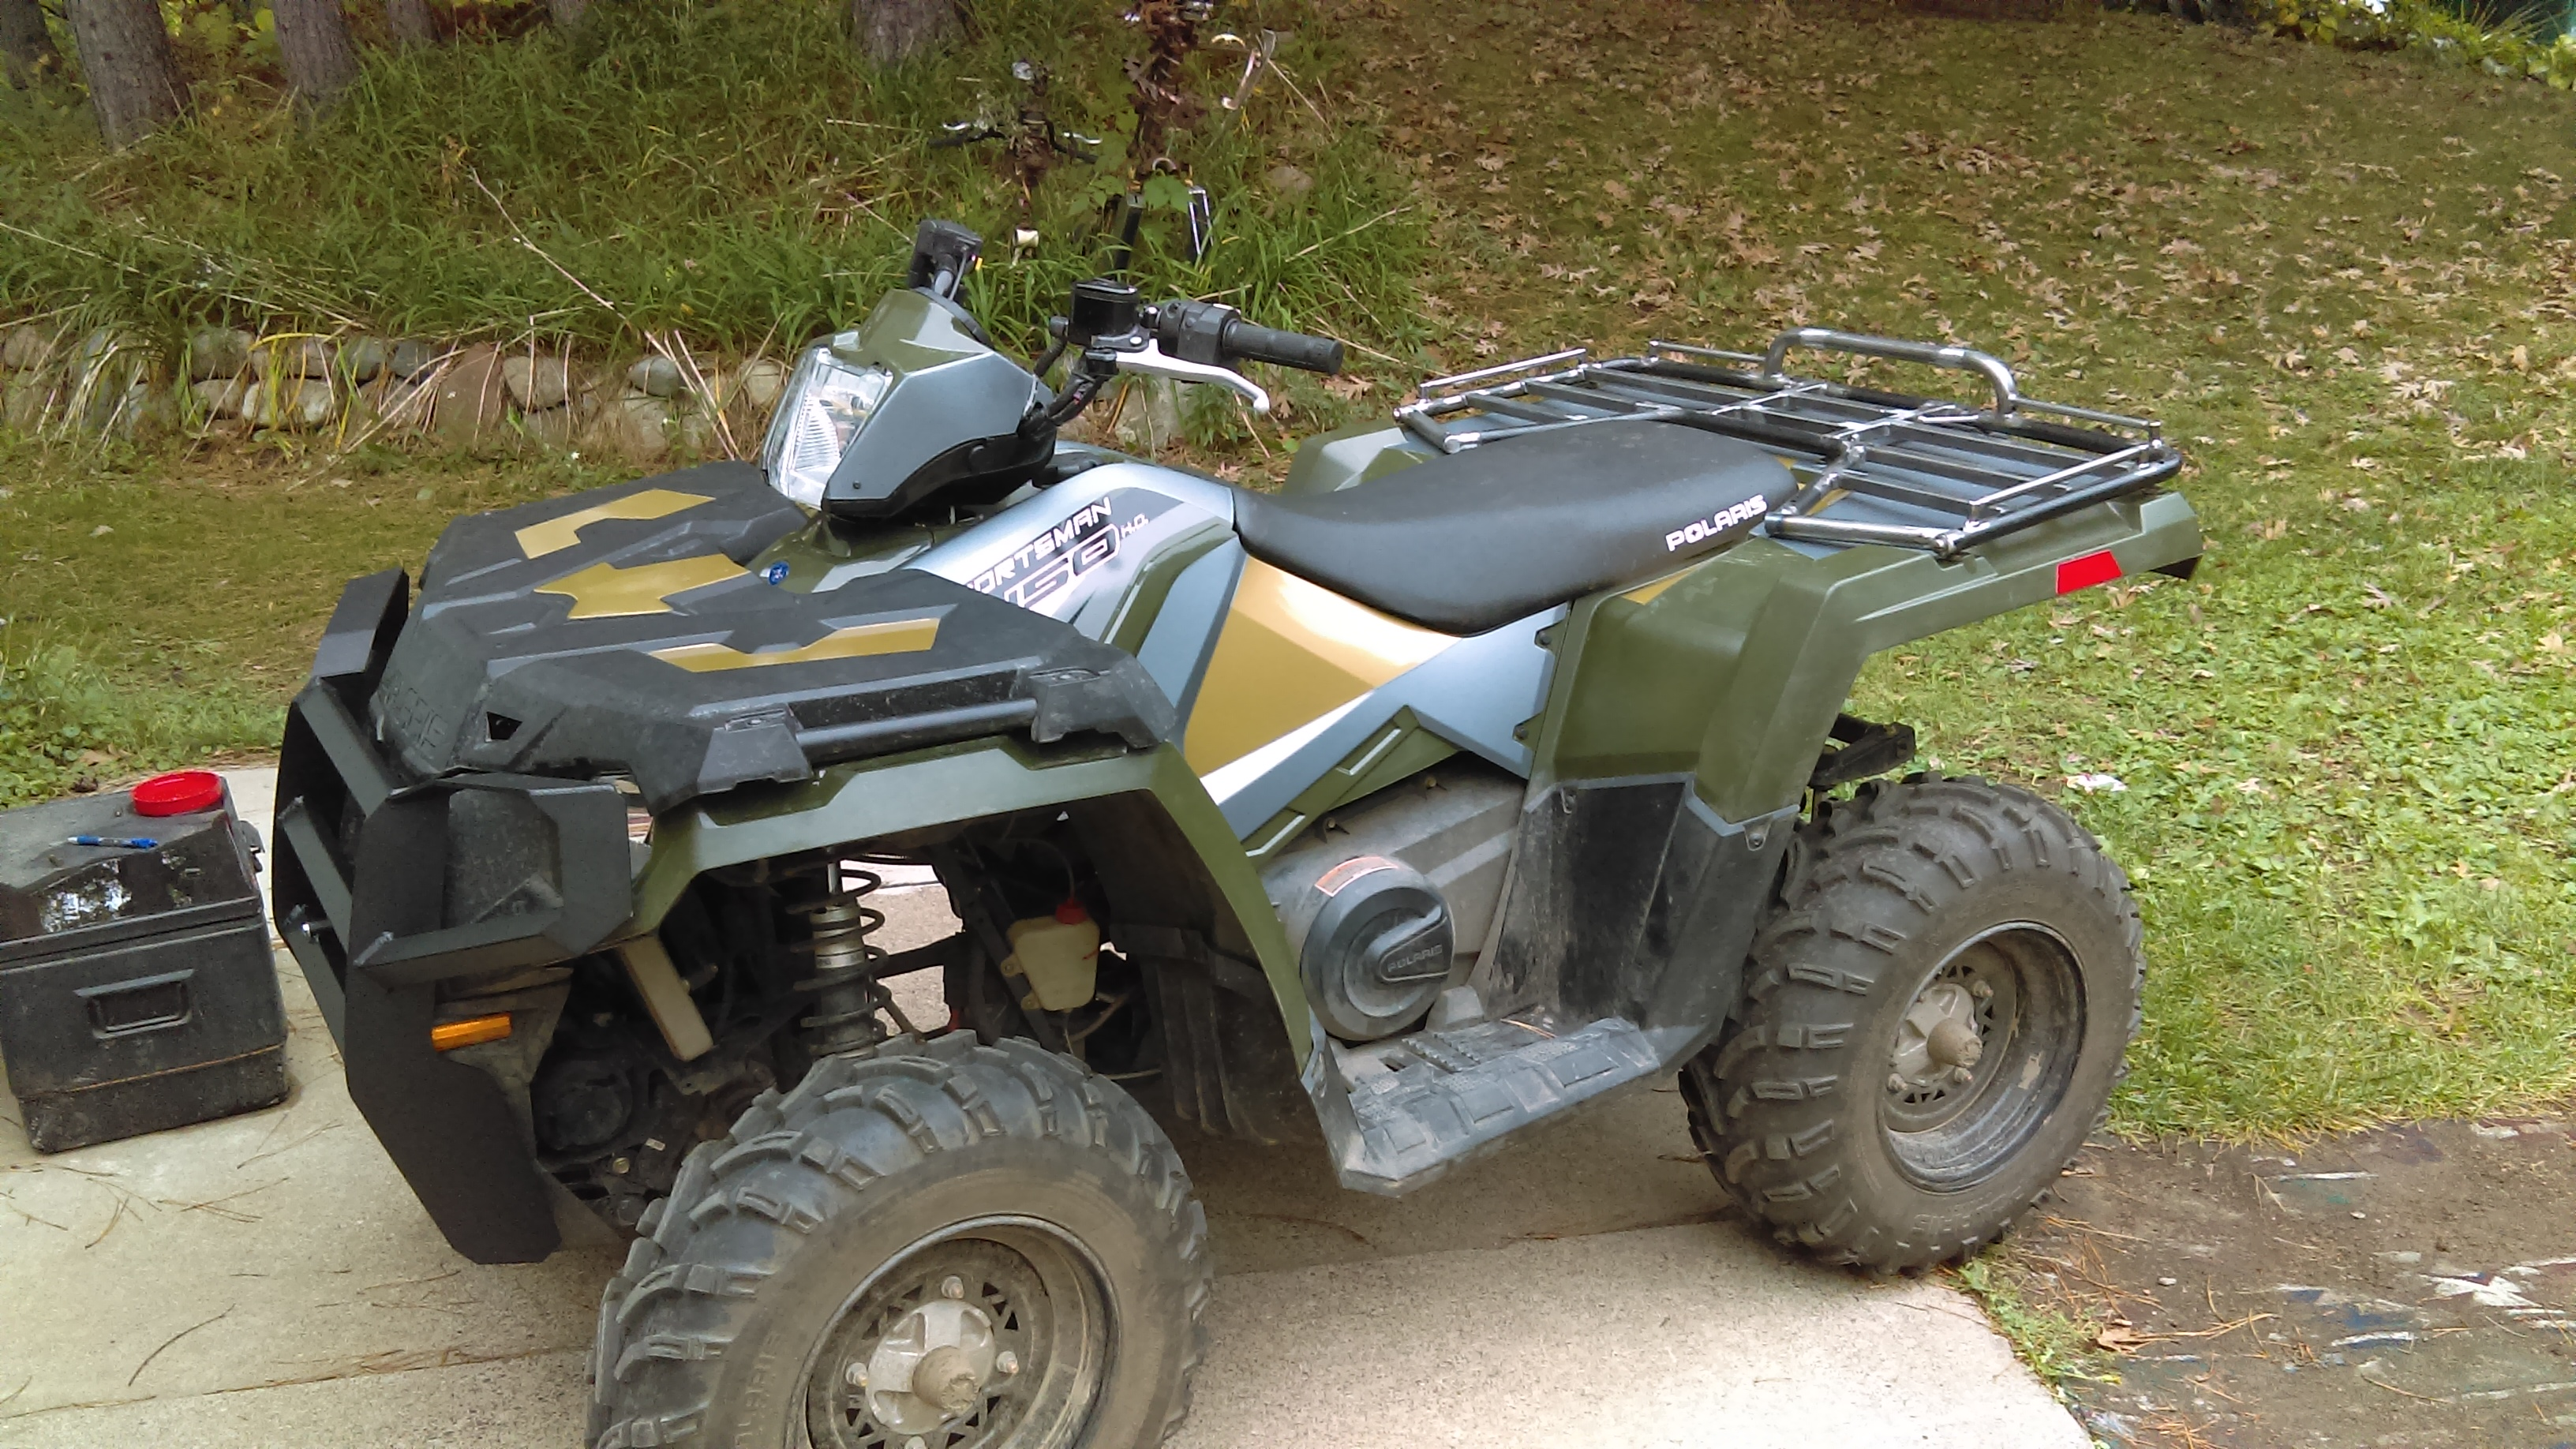 2015 Polaris Ranger >> Bought 2017 polaris sportsman 450 ho - Page 3 - Polaris